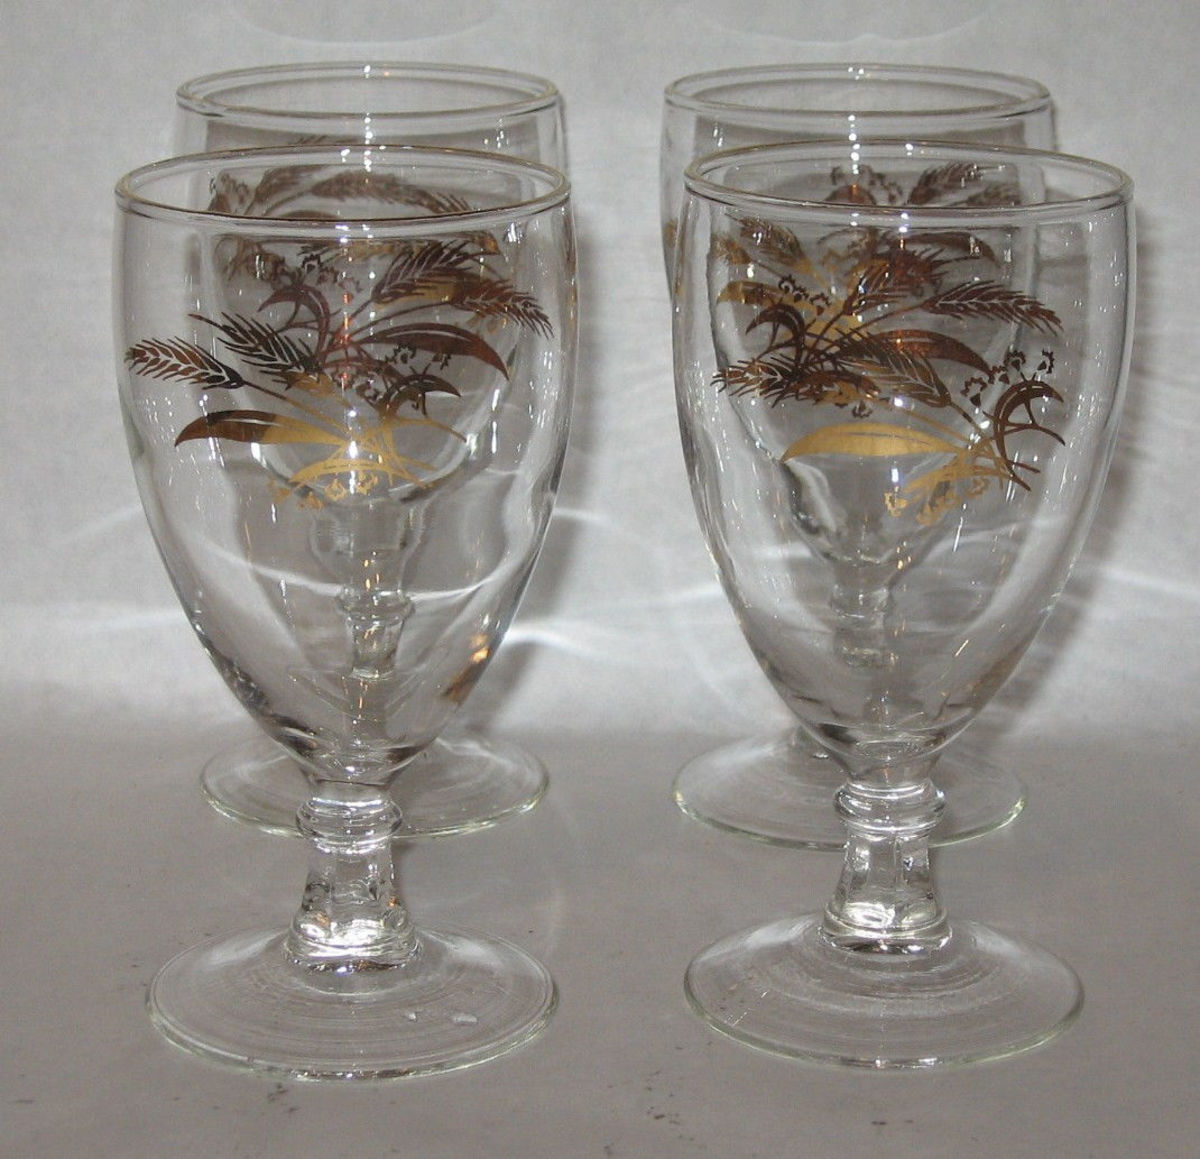 "Here are four 8 ounce water goblets they are 5-7/8"" tall with  real  24k gold accents and designs with golden wheat."